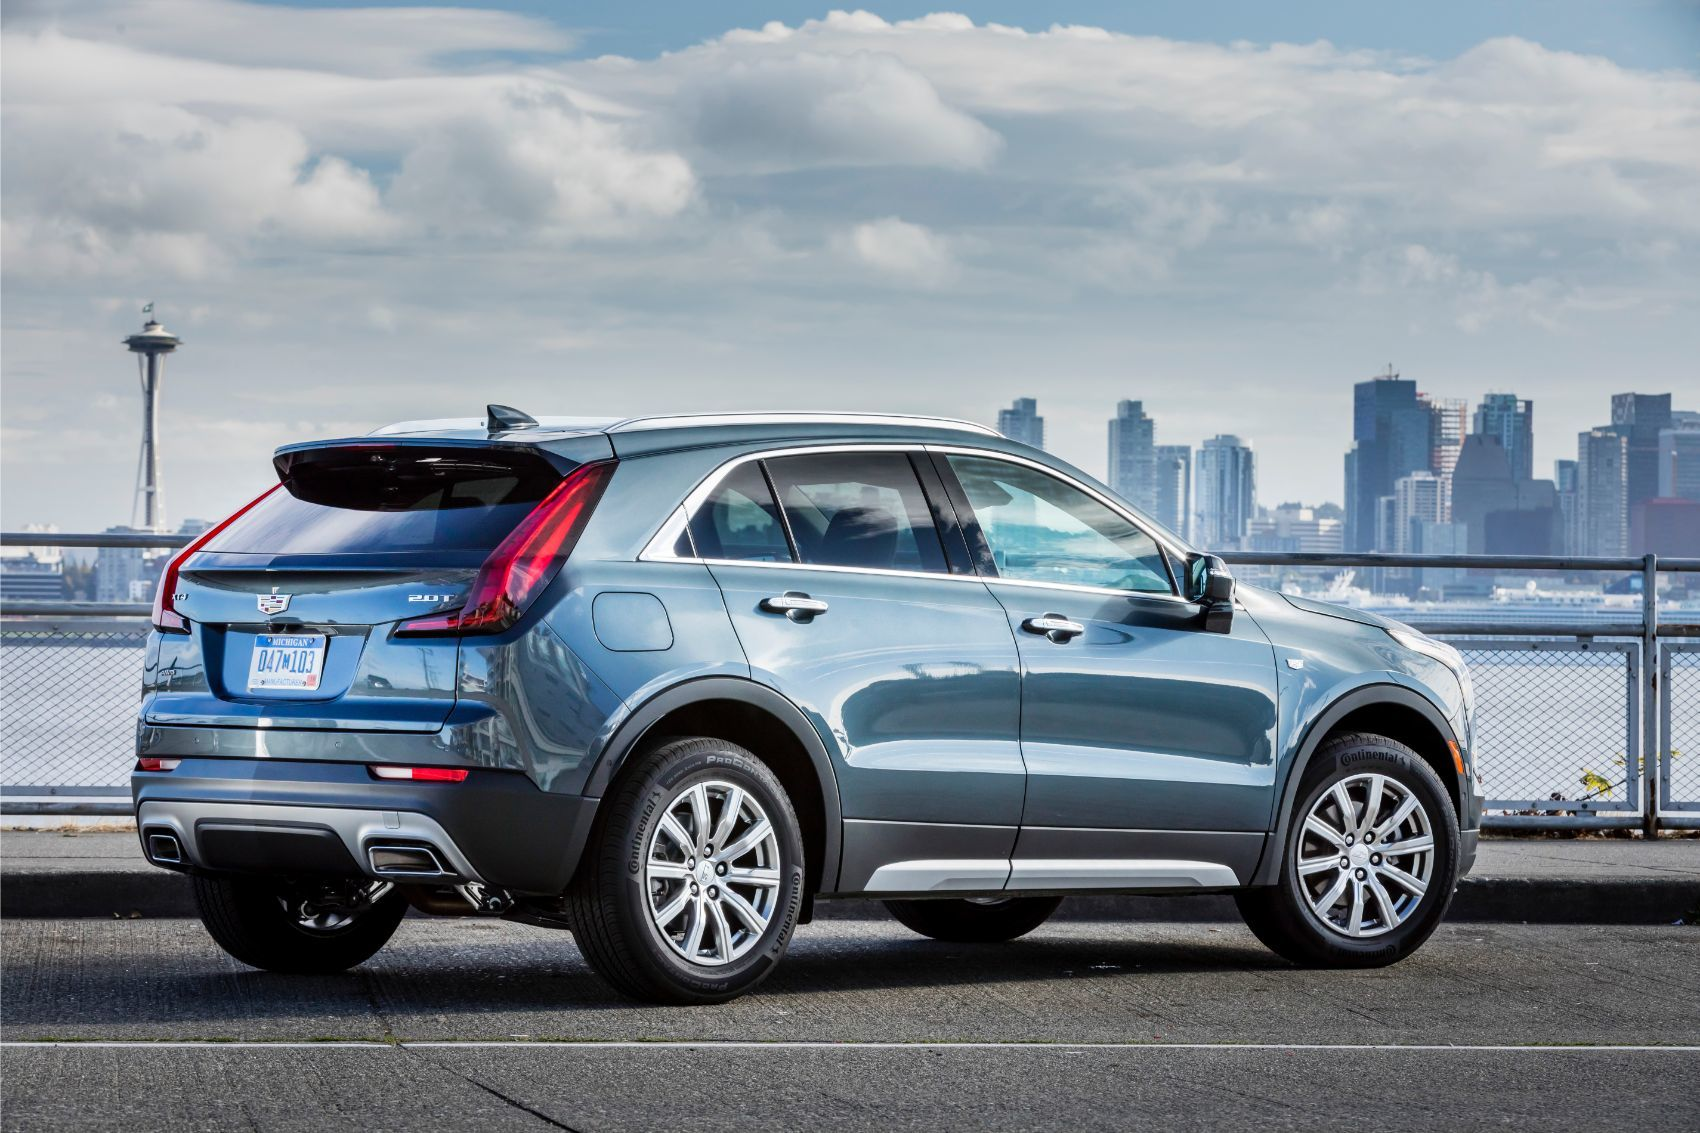 2019 Cadillac Xt4 Review Affordable Luxury For Younger Buyers